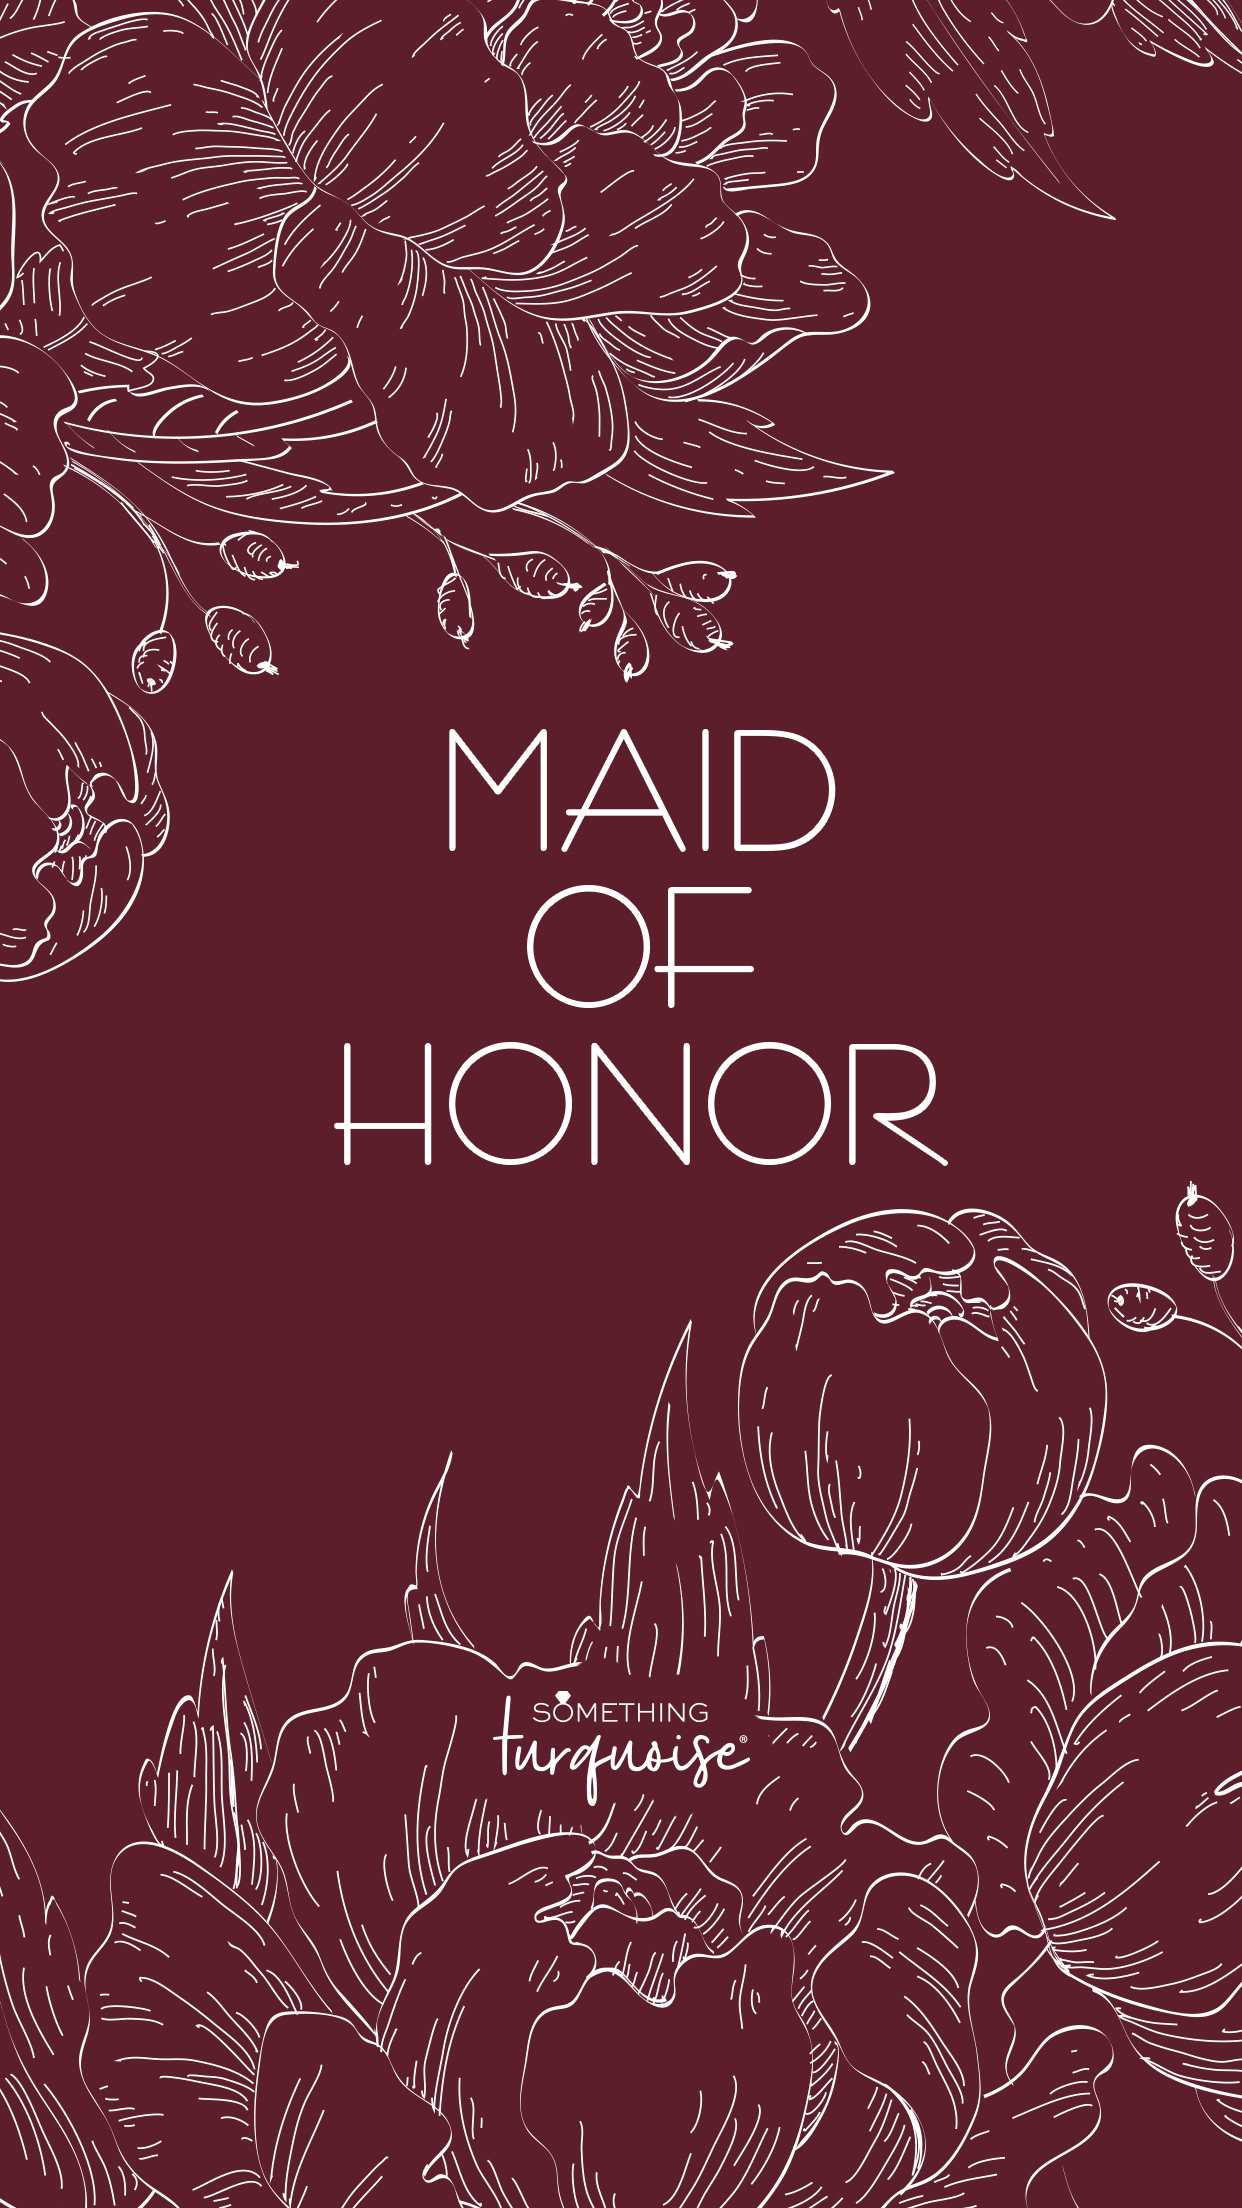 Free floral phone wallpaper for the Maid of Honor